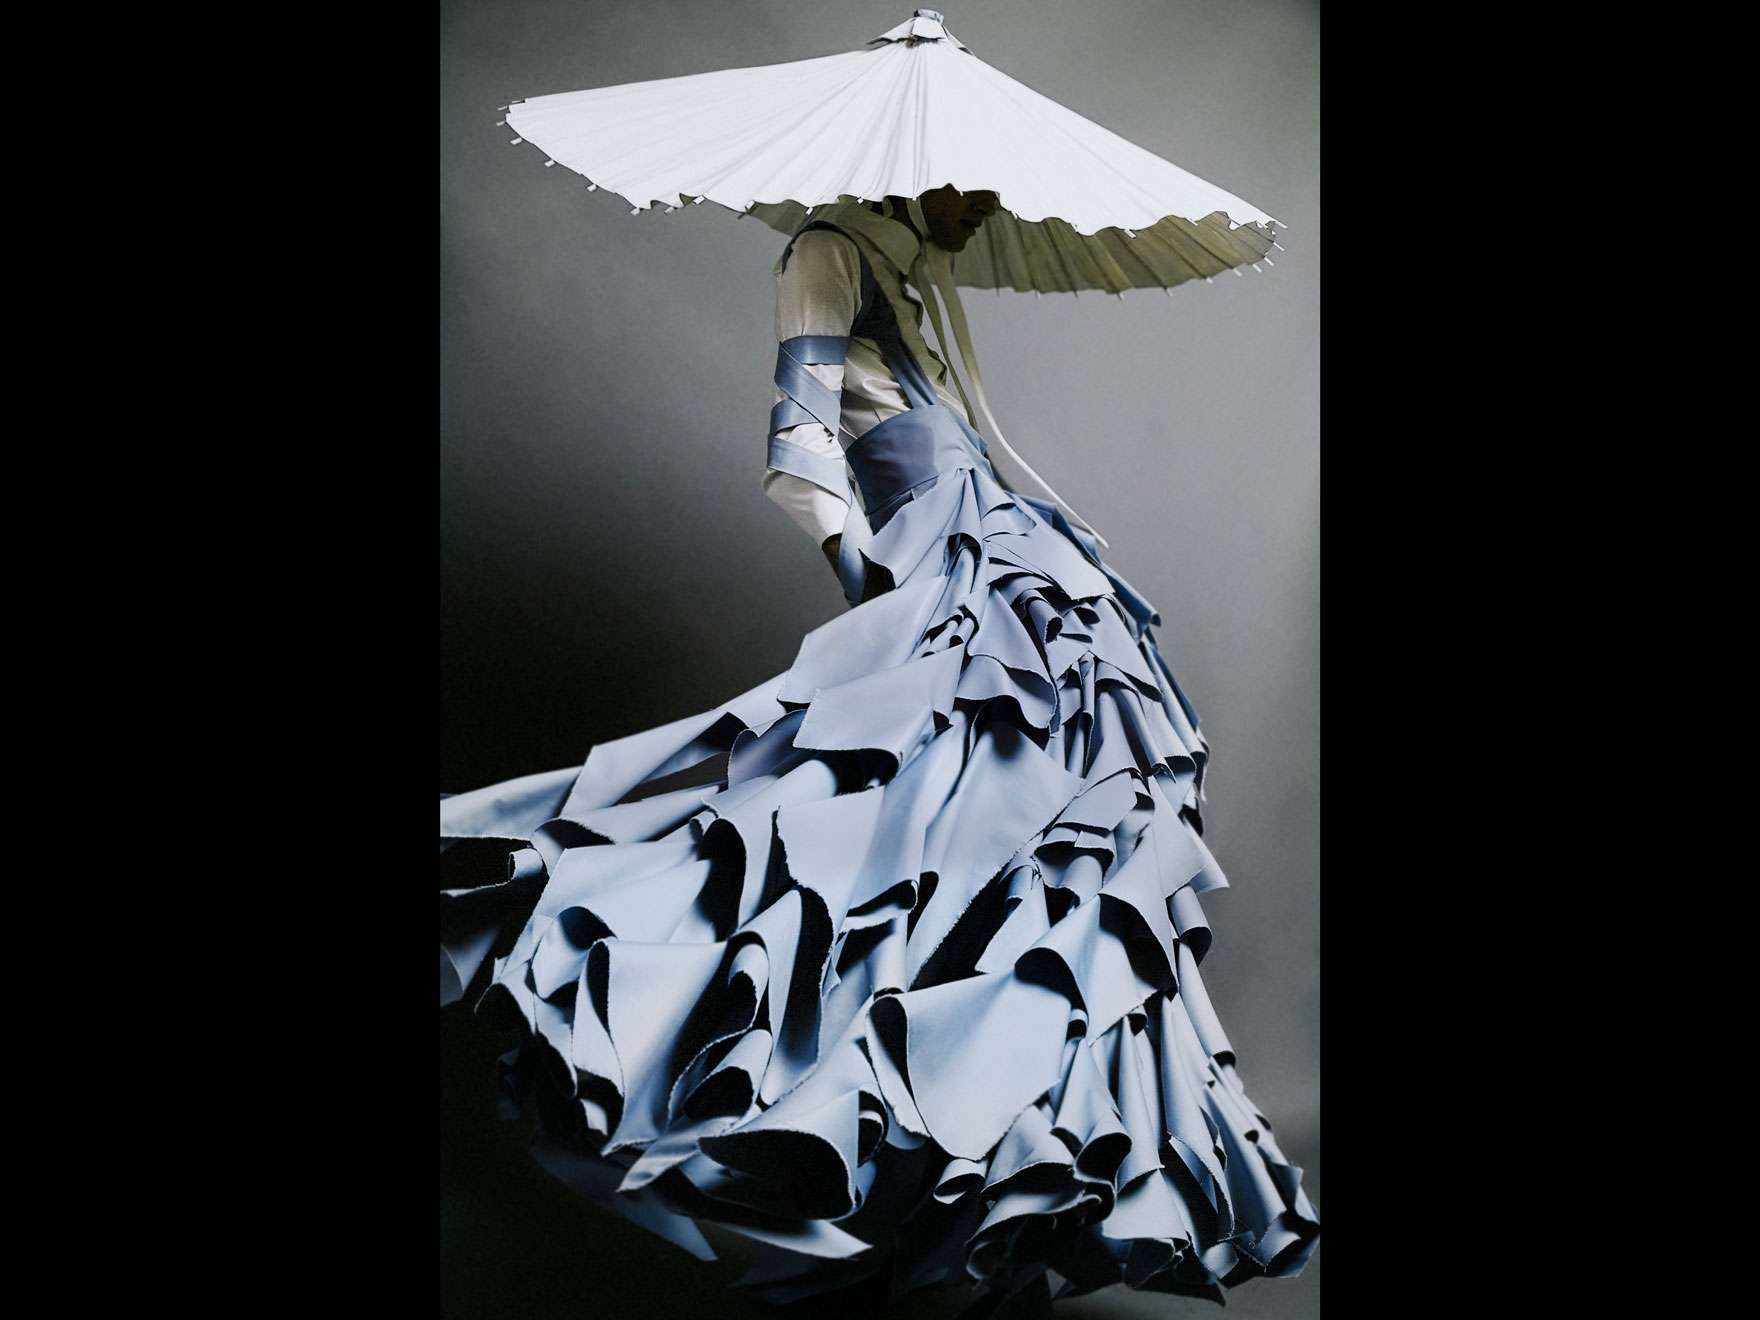 Alessandro Trincone-designed dress, Annodami